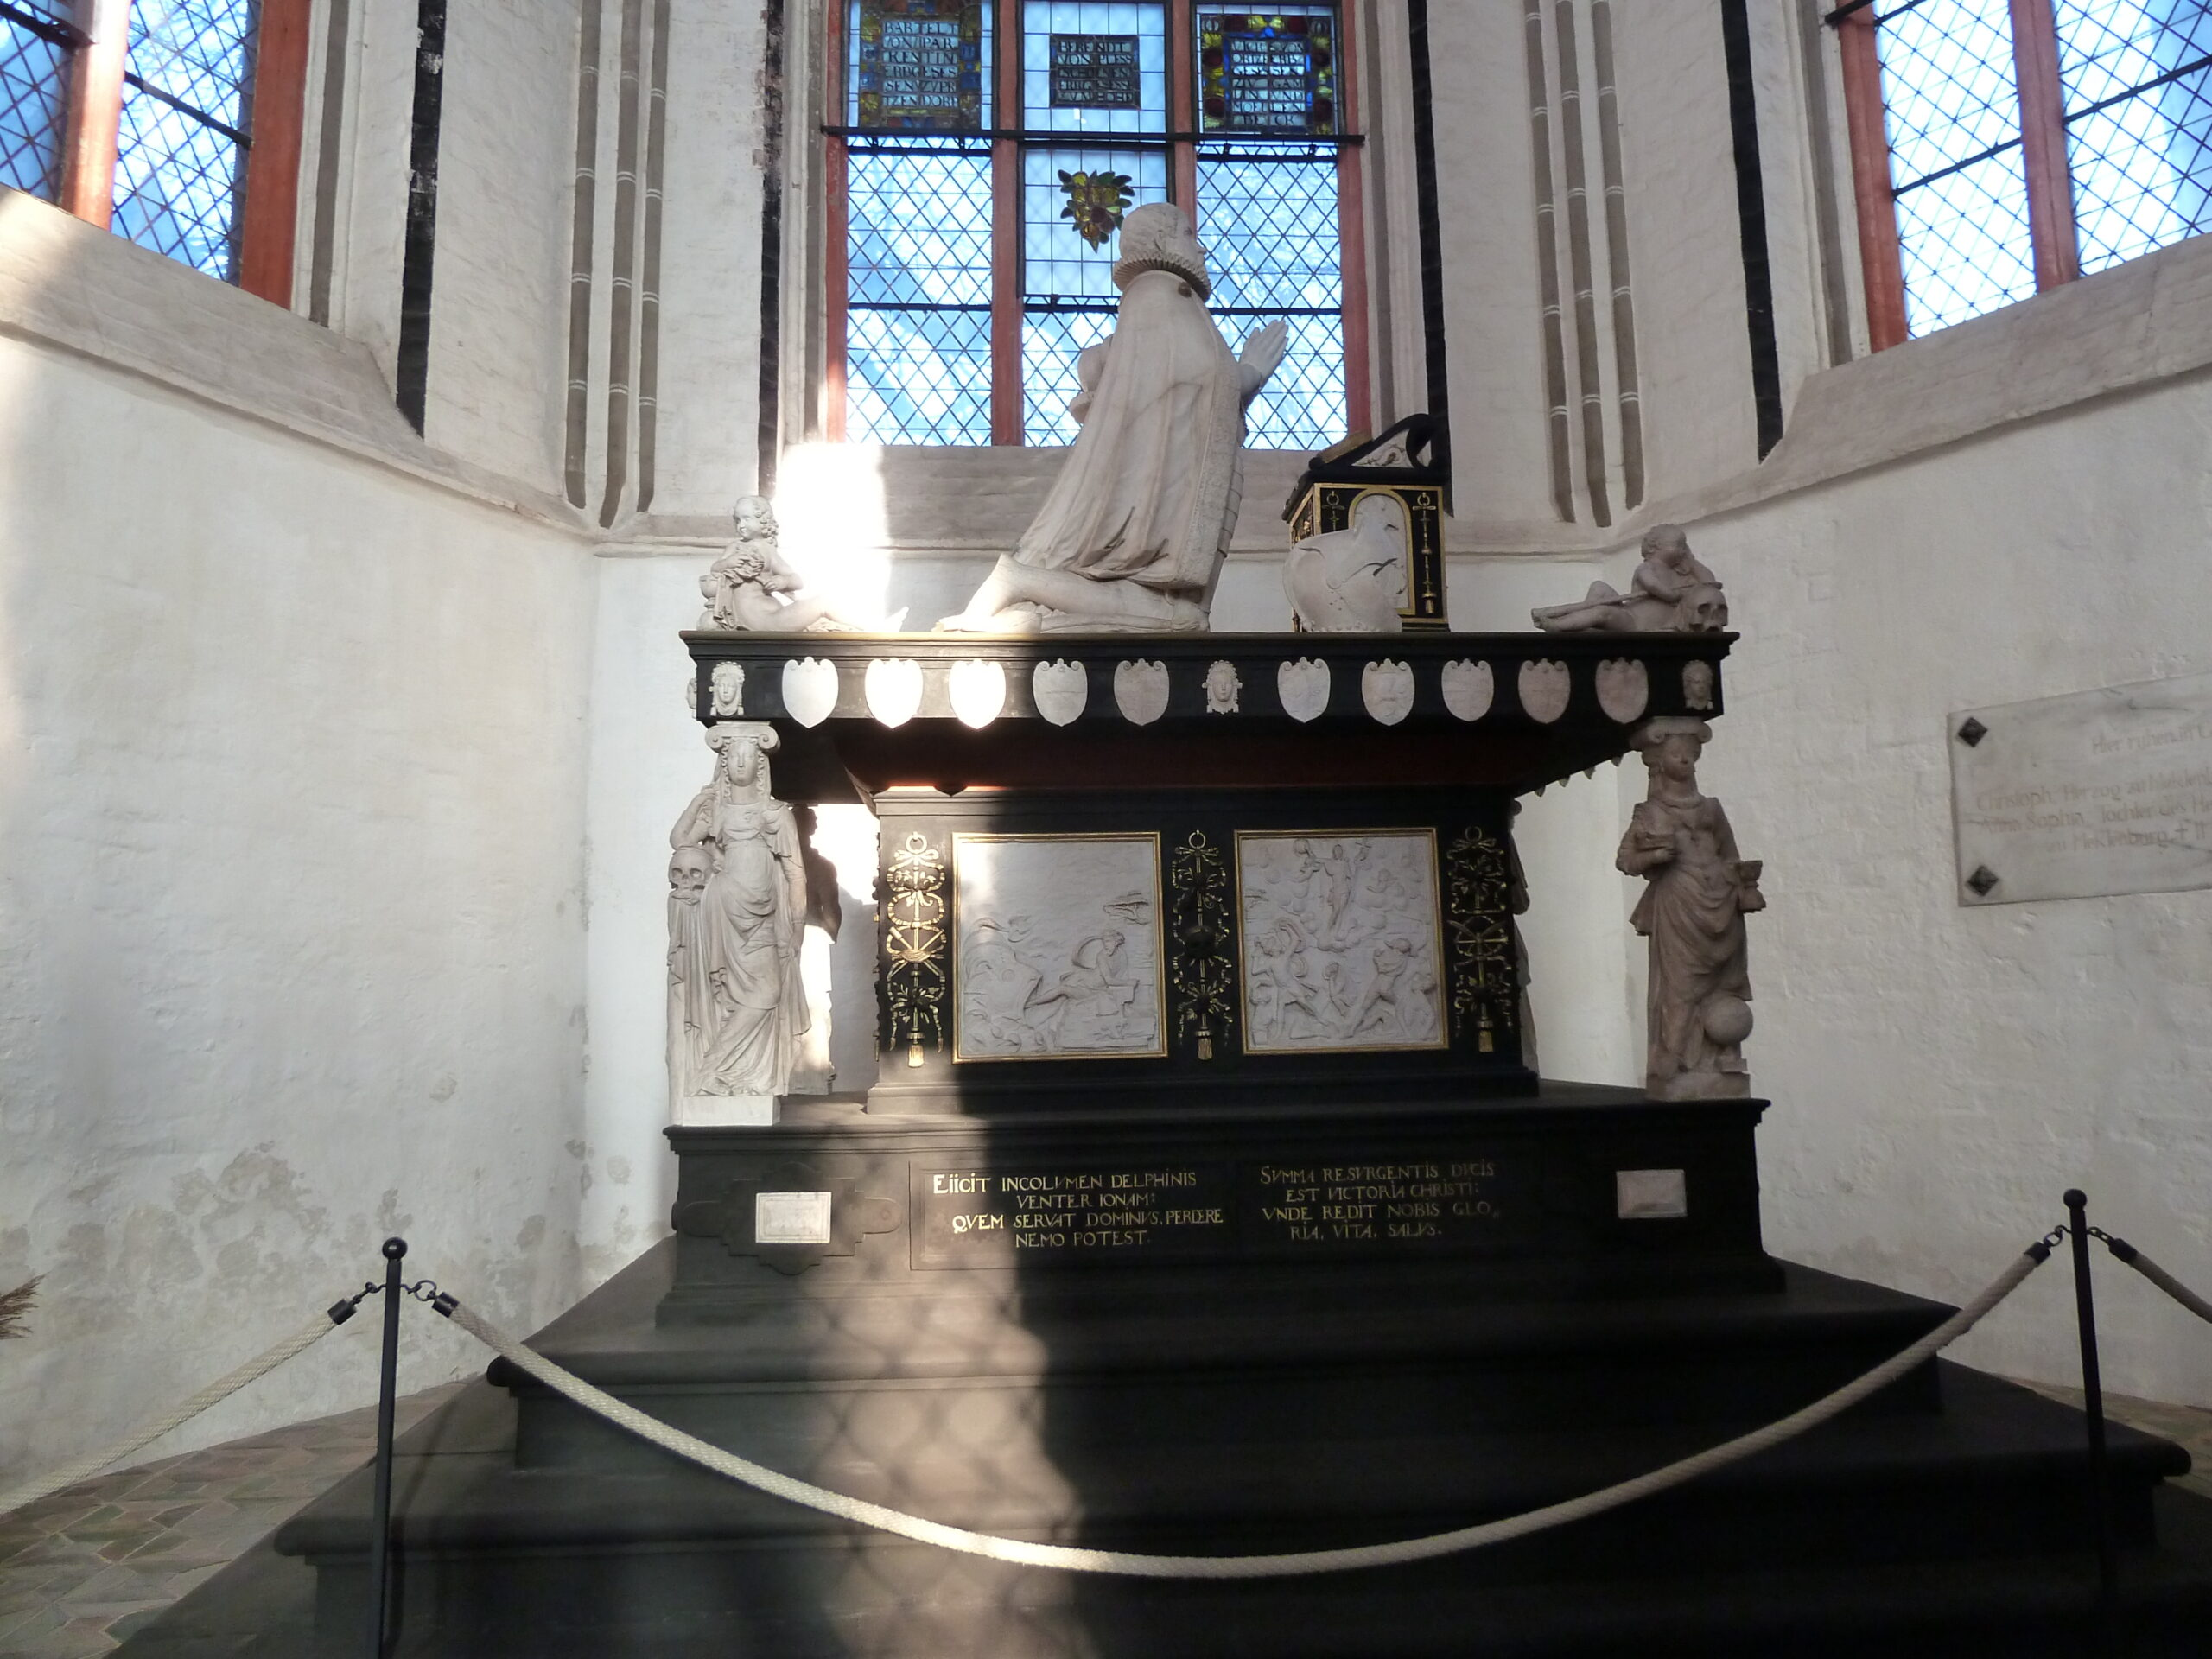 Robert Coppens, Tomb of Christopher of Mecklenburg-Gadebusch and his Wife, Elisabeth Vasa of Sweden, erected between 1594 and 1596, Schwerin Cathedral (Germany)